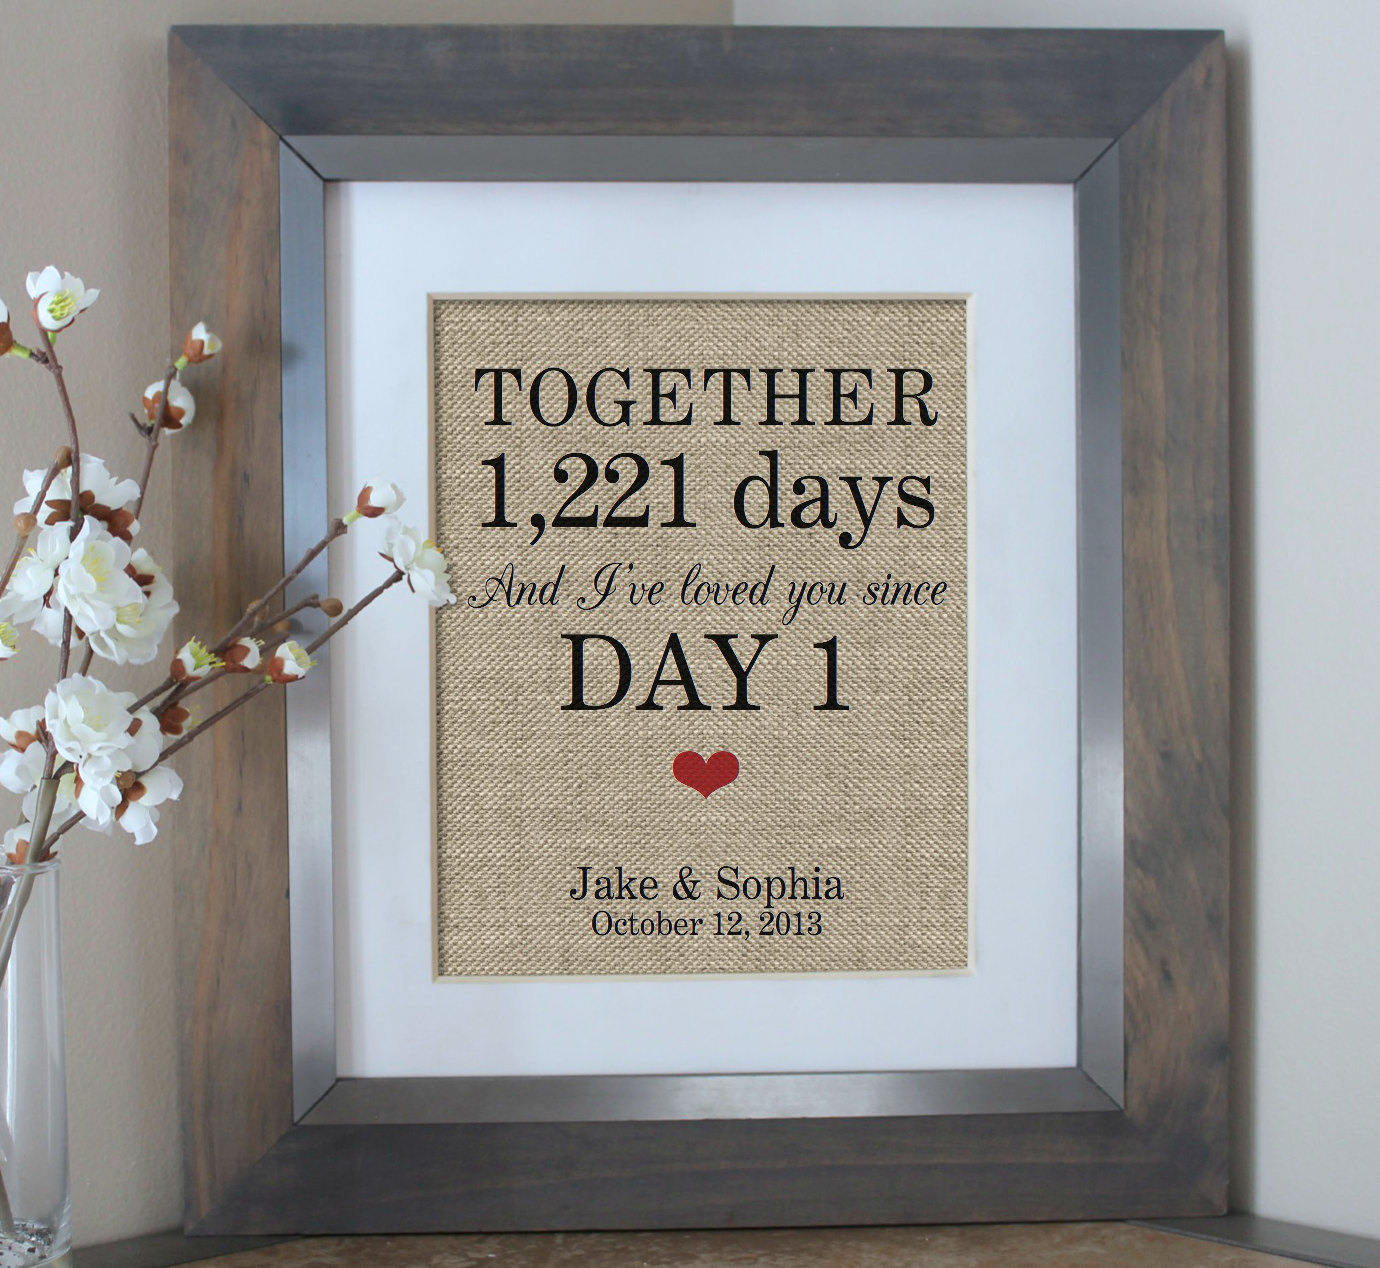 What To Get Fiance For Wedding Gift: Days Together Personalized Gift For Boyfriend Gift